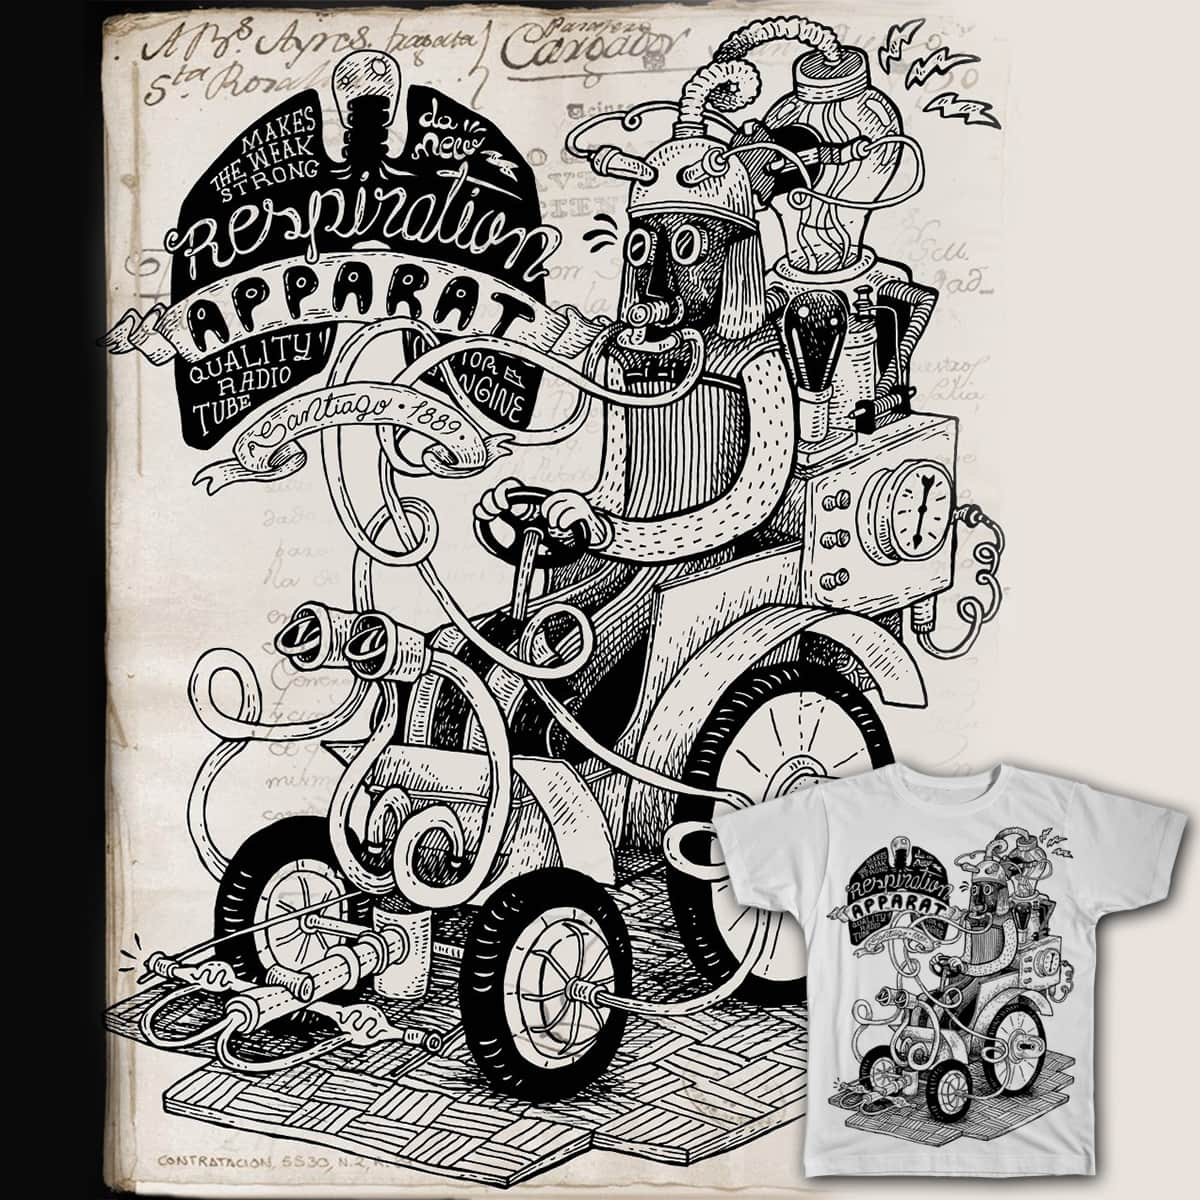 Respiration-Apparat by capdevila on Threadless